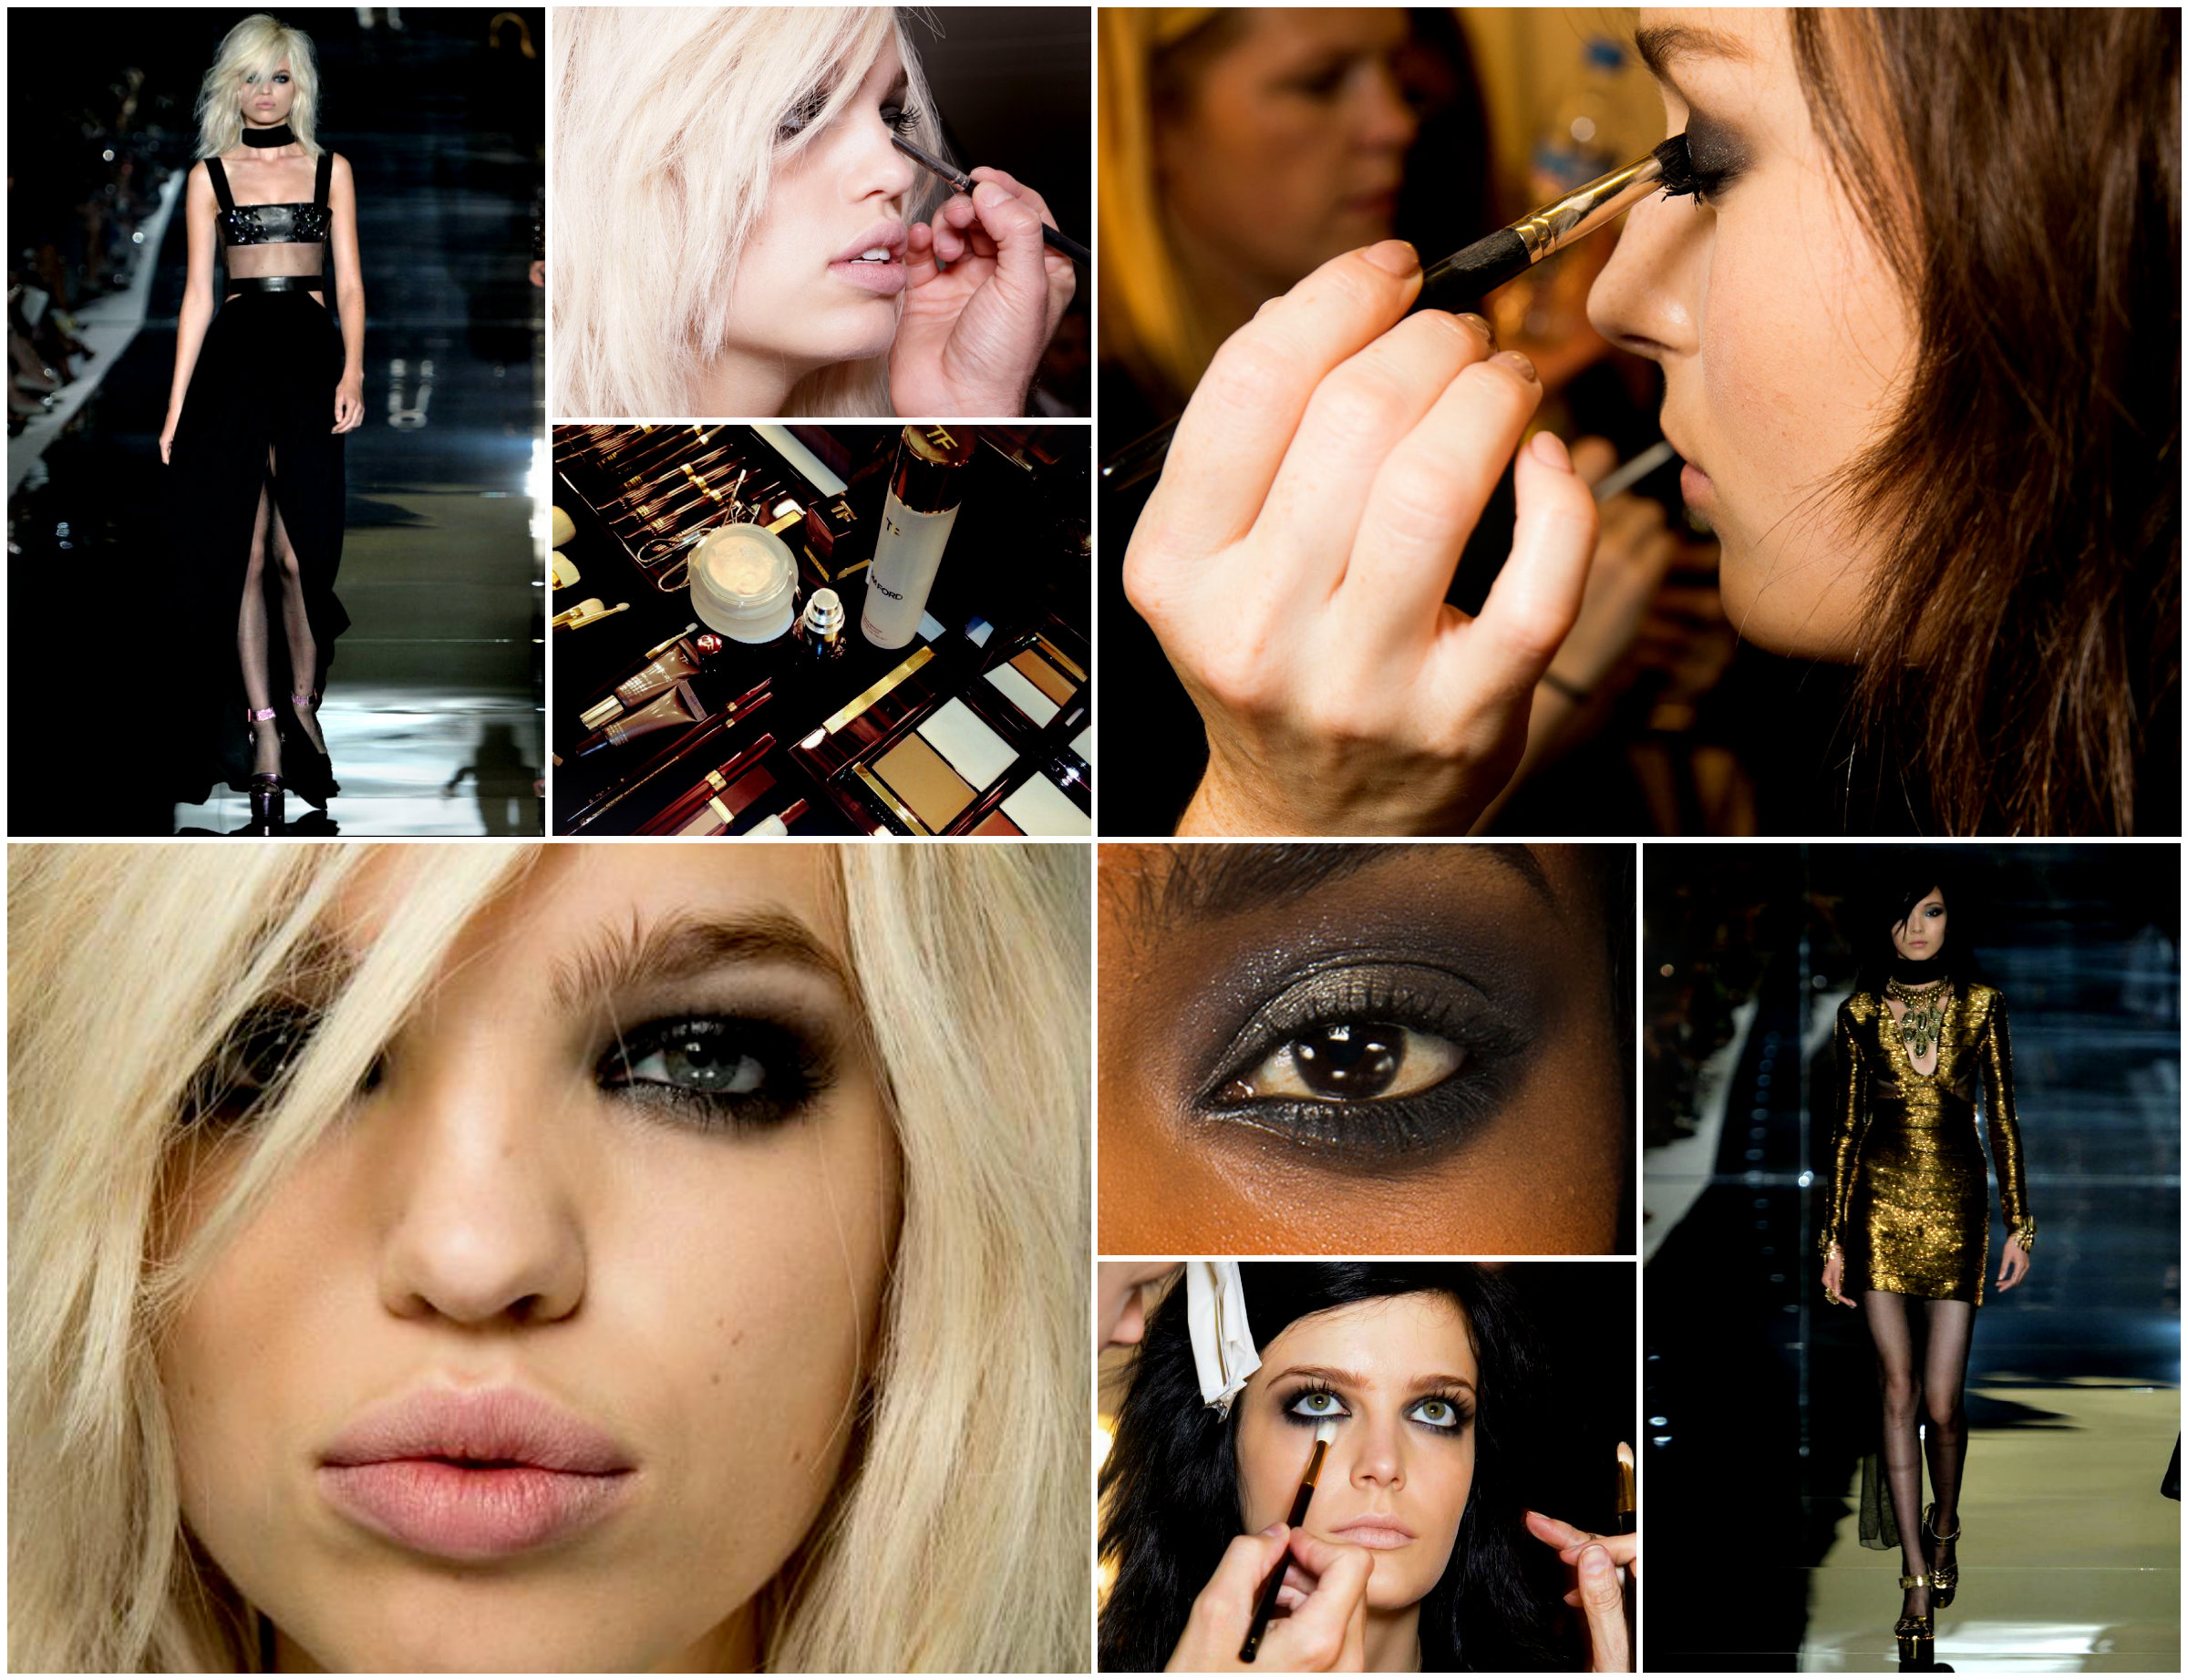 GET THE LOOK: ROCKSTAR CHIC AT THE TOM FORD SPRING/SUMMER 2015 WOMENSWEAR COLLECTION RUNWAY SHOW featured image